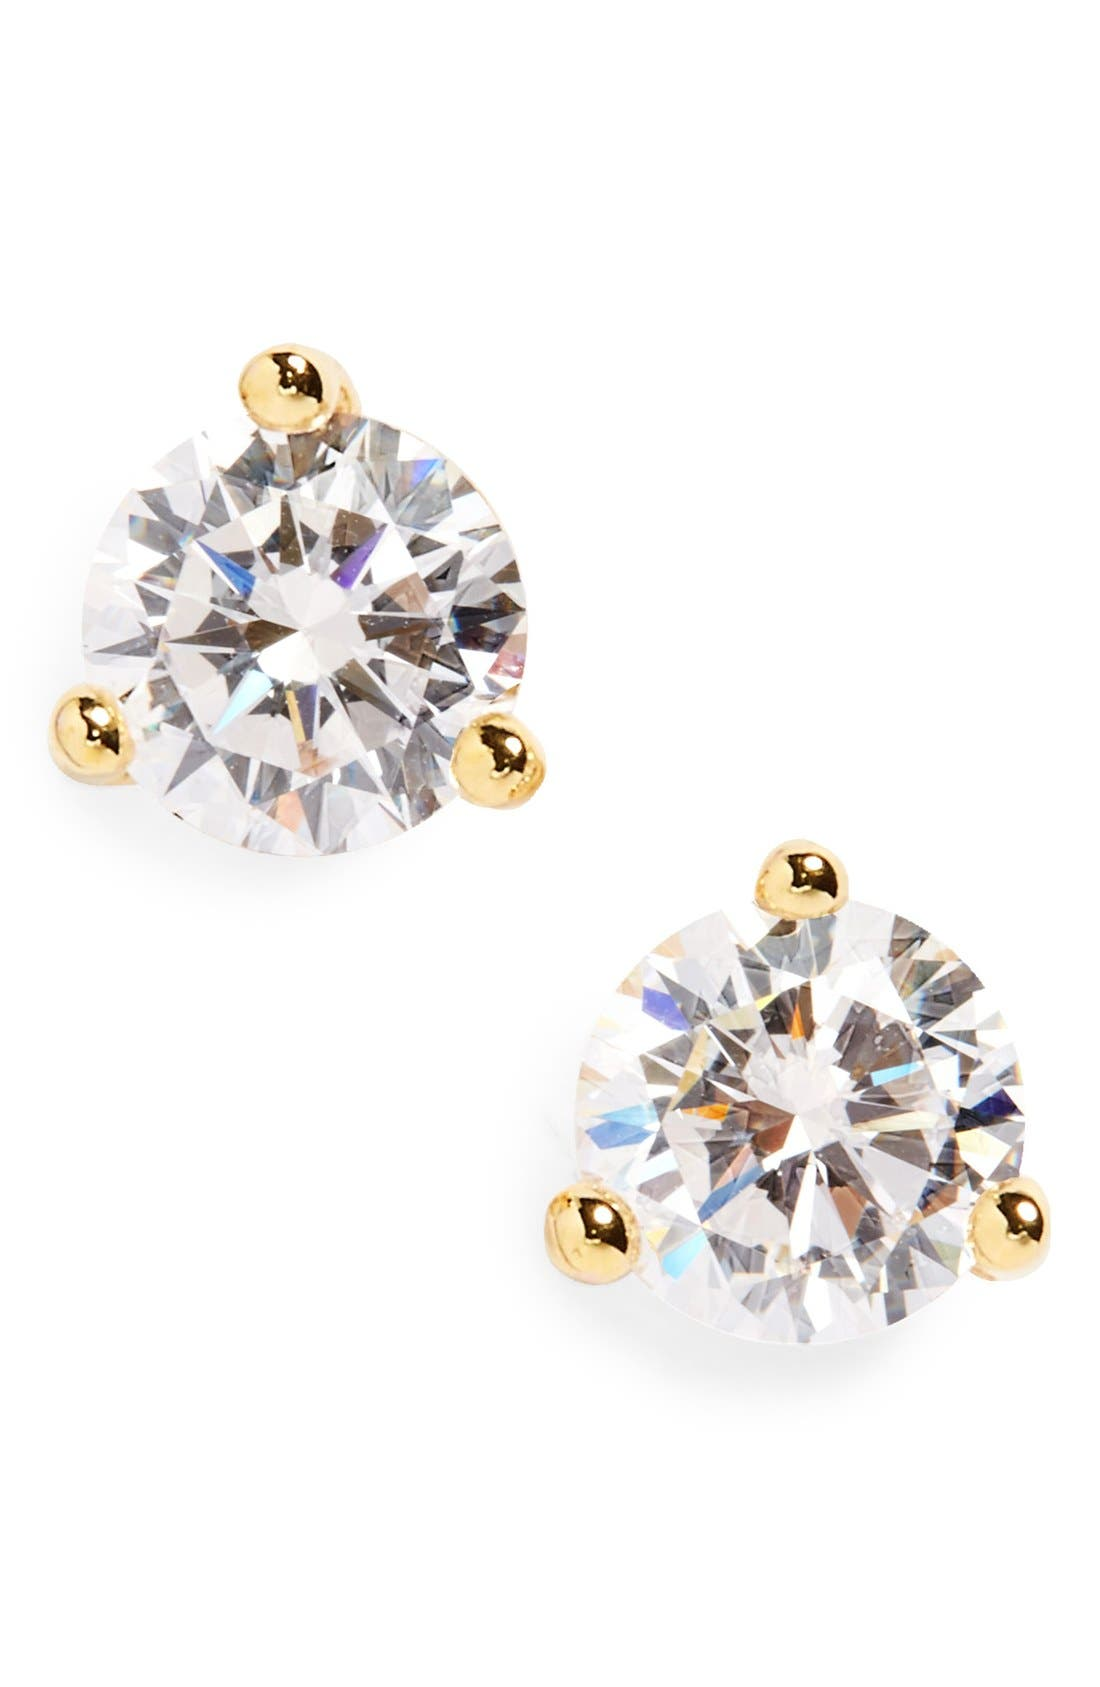 Round 0.50ct Cubic Zirconia Earrings,                         Main,                         color, Gold Vermeil